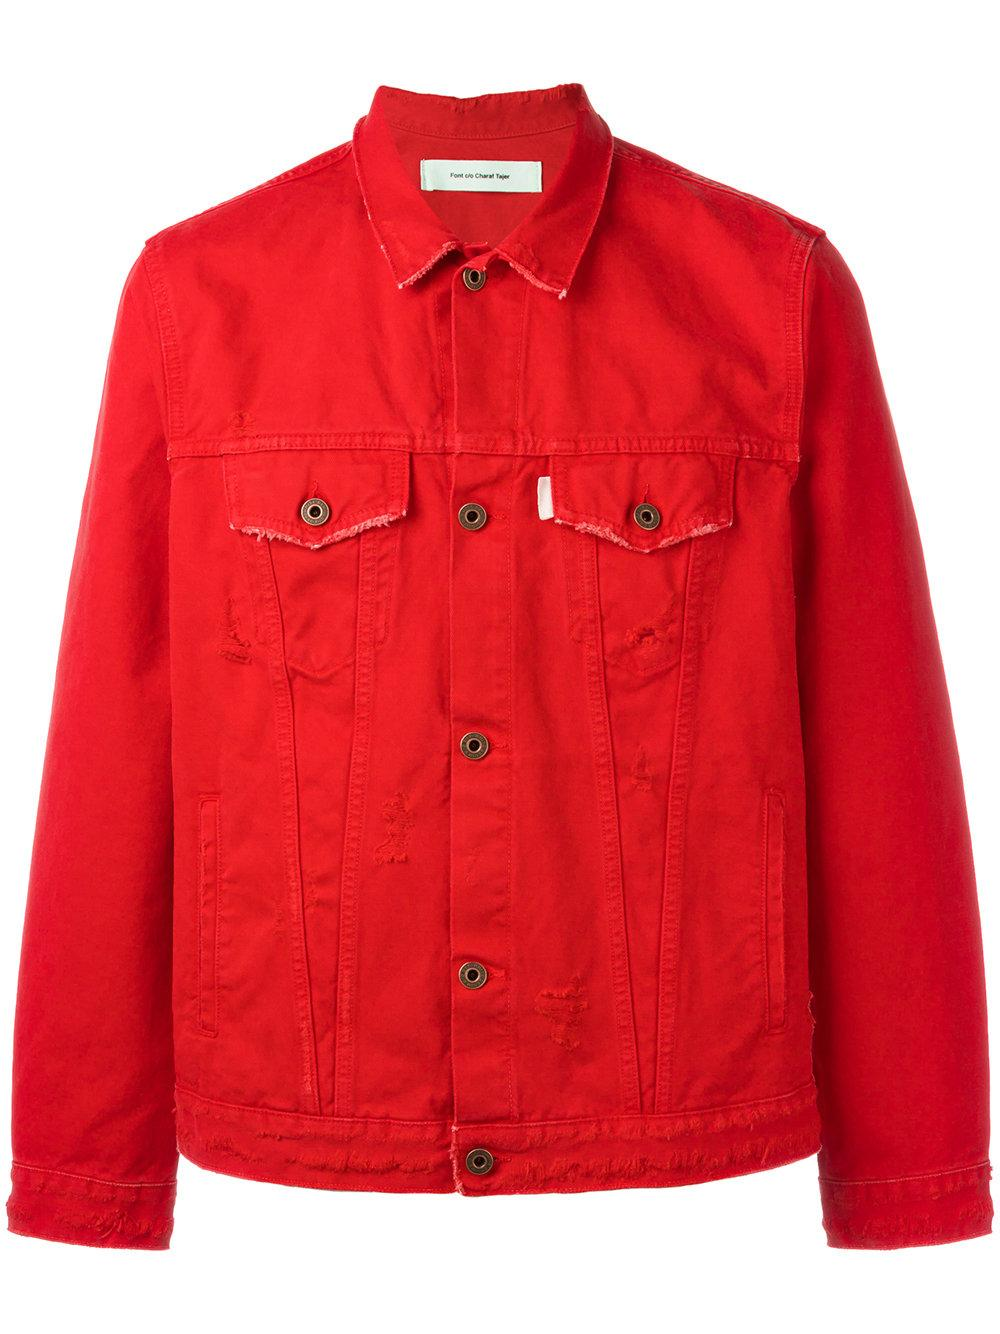 Pre-owned Denim Jacket in red ( MYR) liked on Polyvore featuring outerwear, jackets, red, lined denim jacket, red jean jacket, red denim jacket, fleece-lined jackets and long sleeve jacket See more.